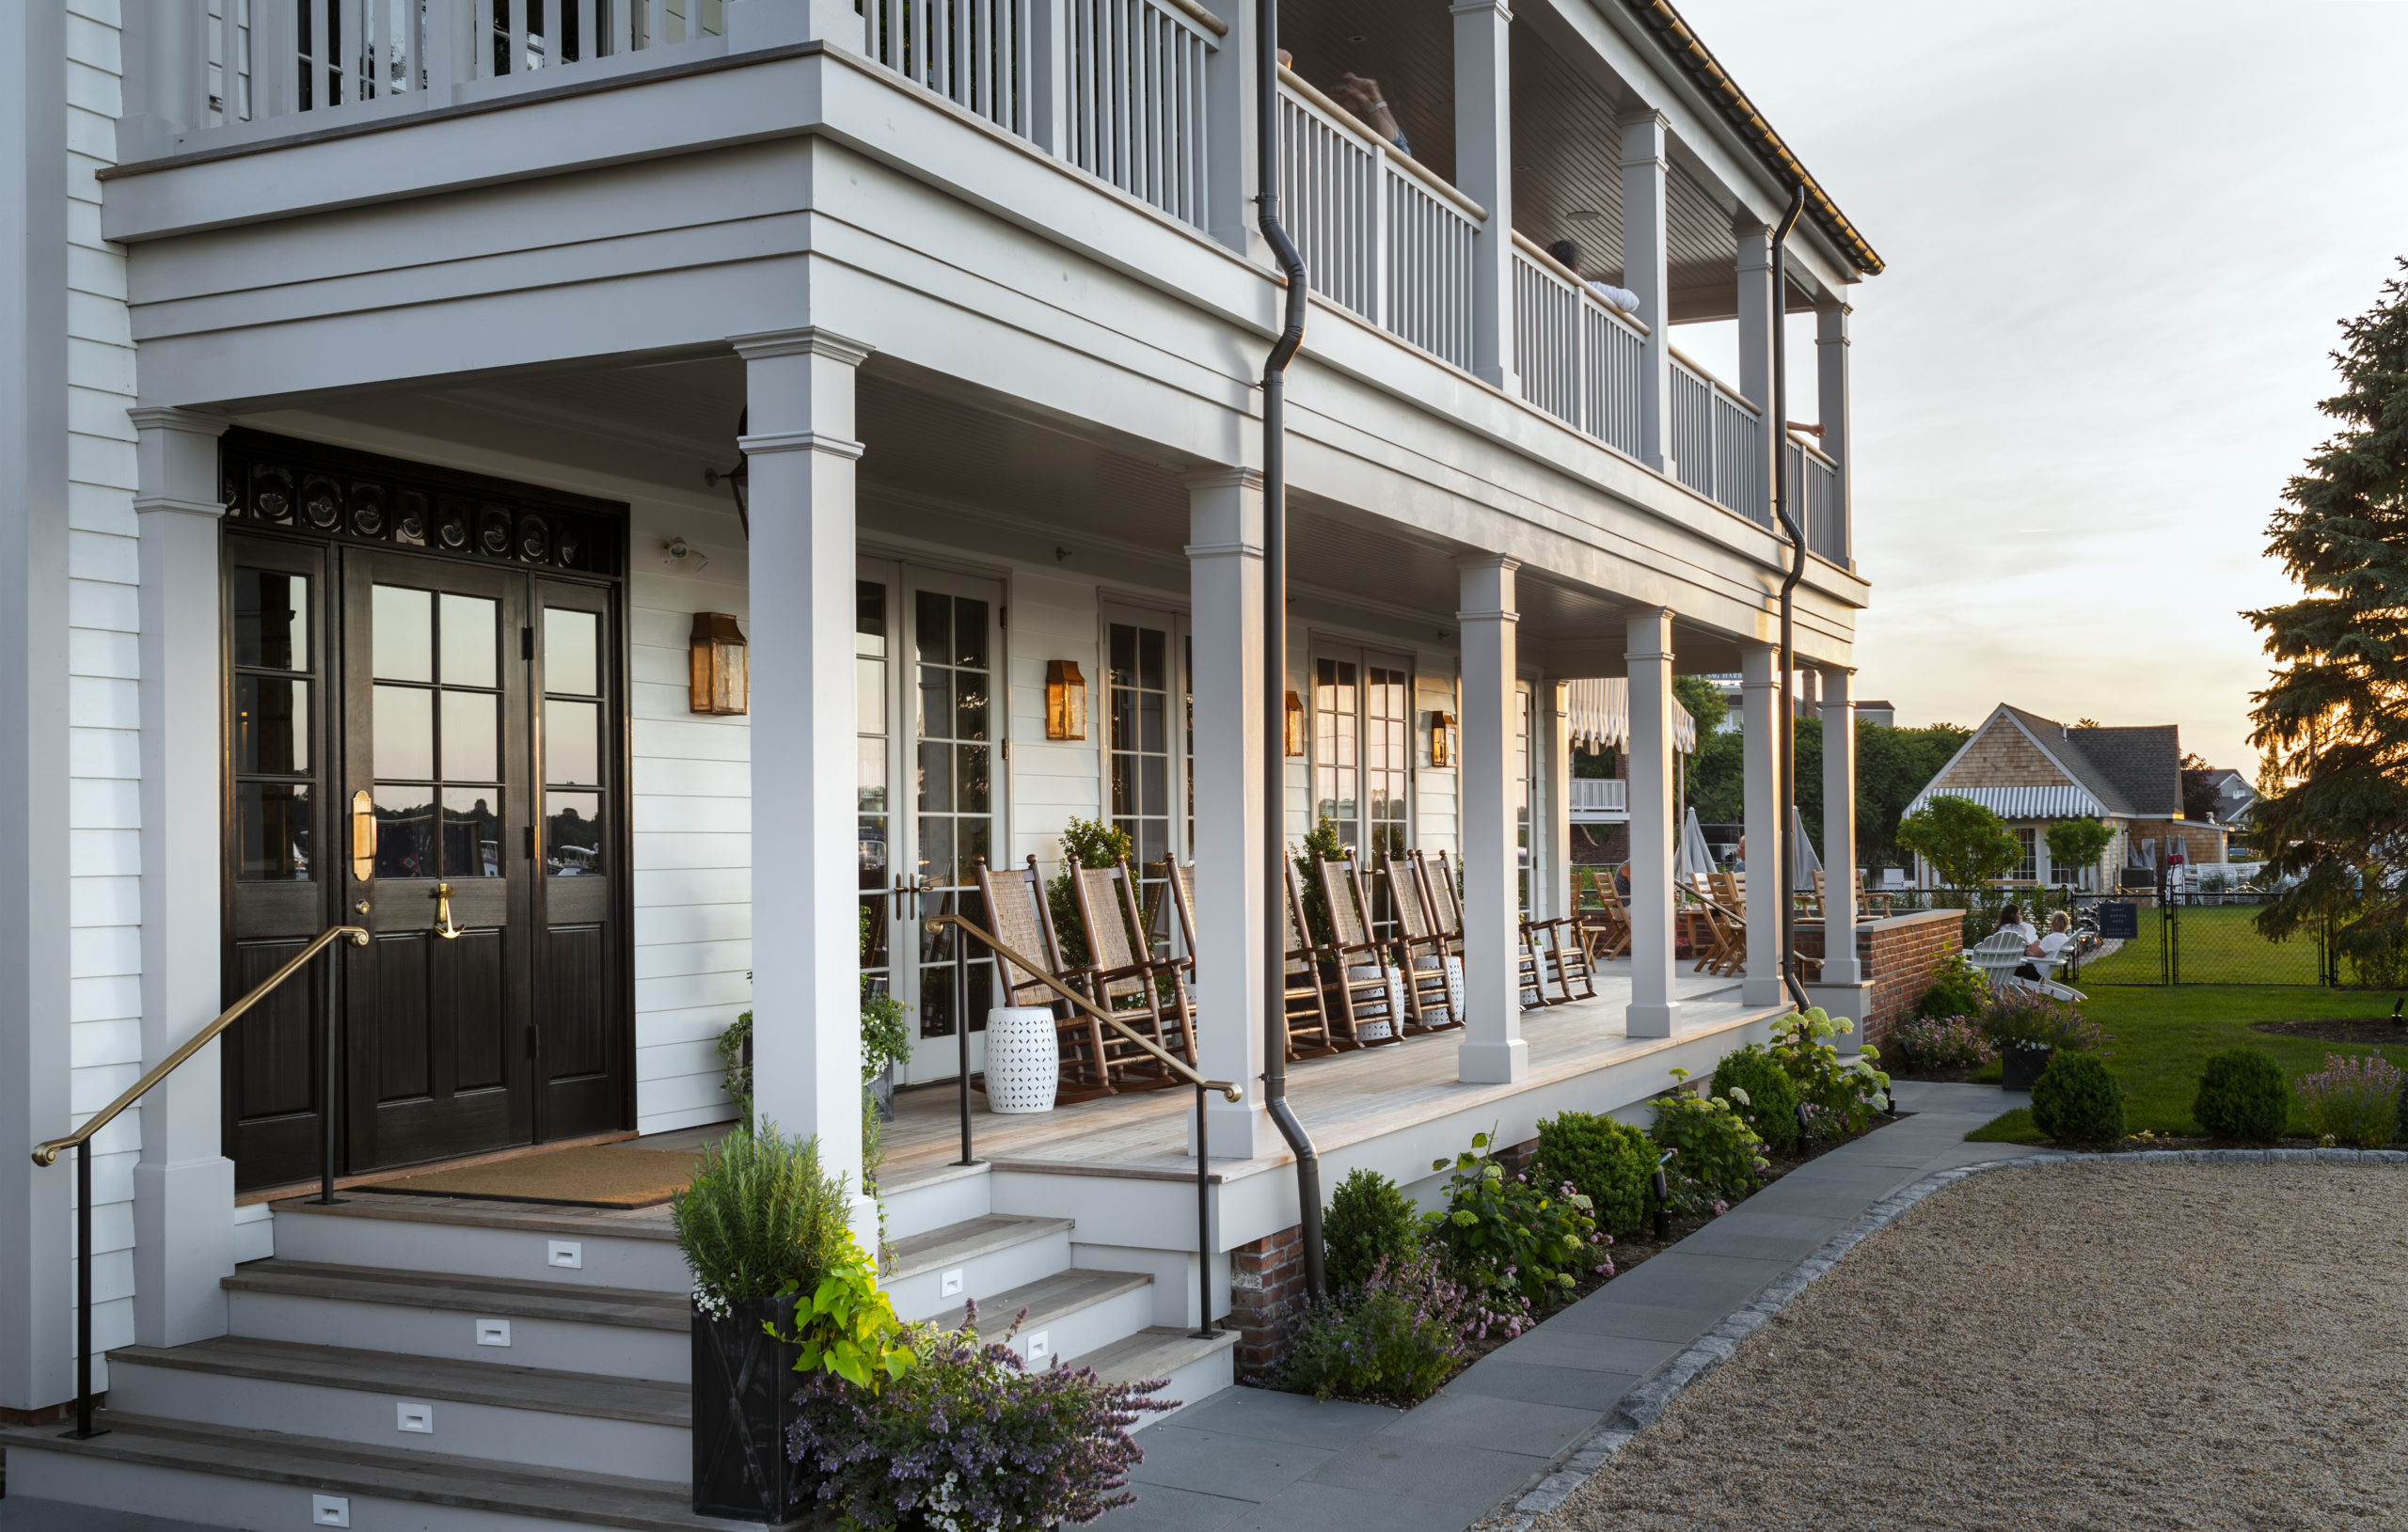 Rocking chairs on the front porch of Baron's Cove.